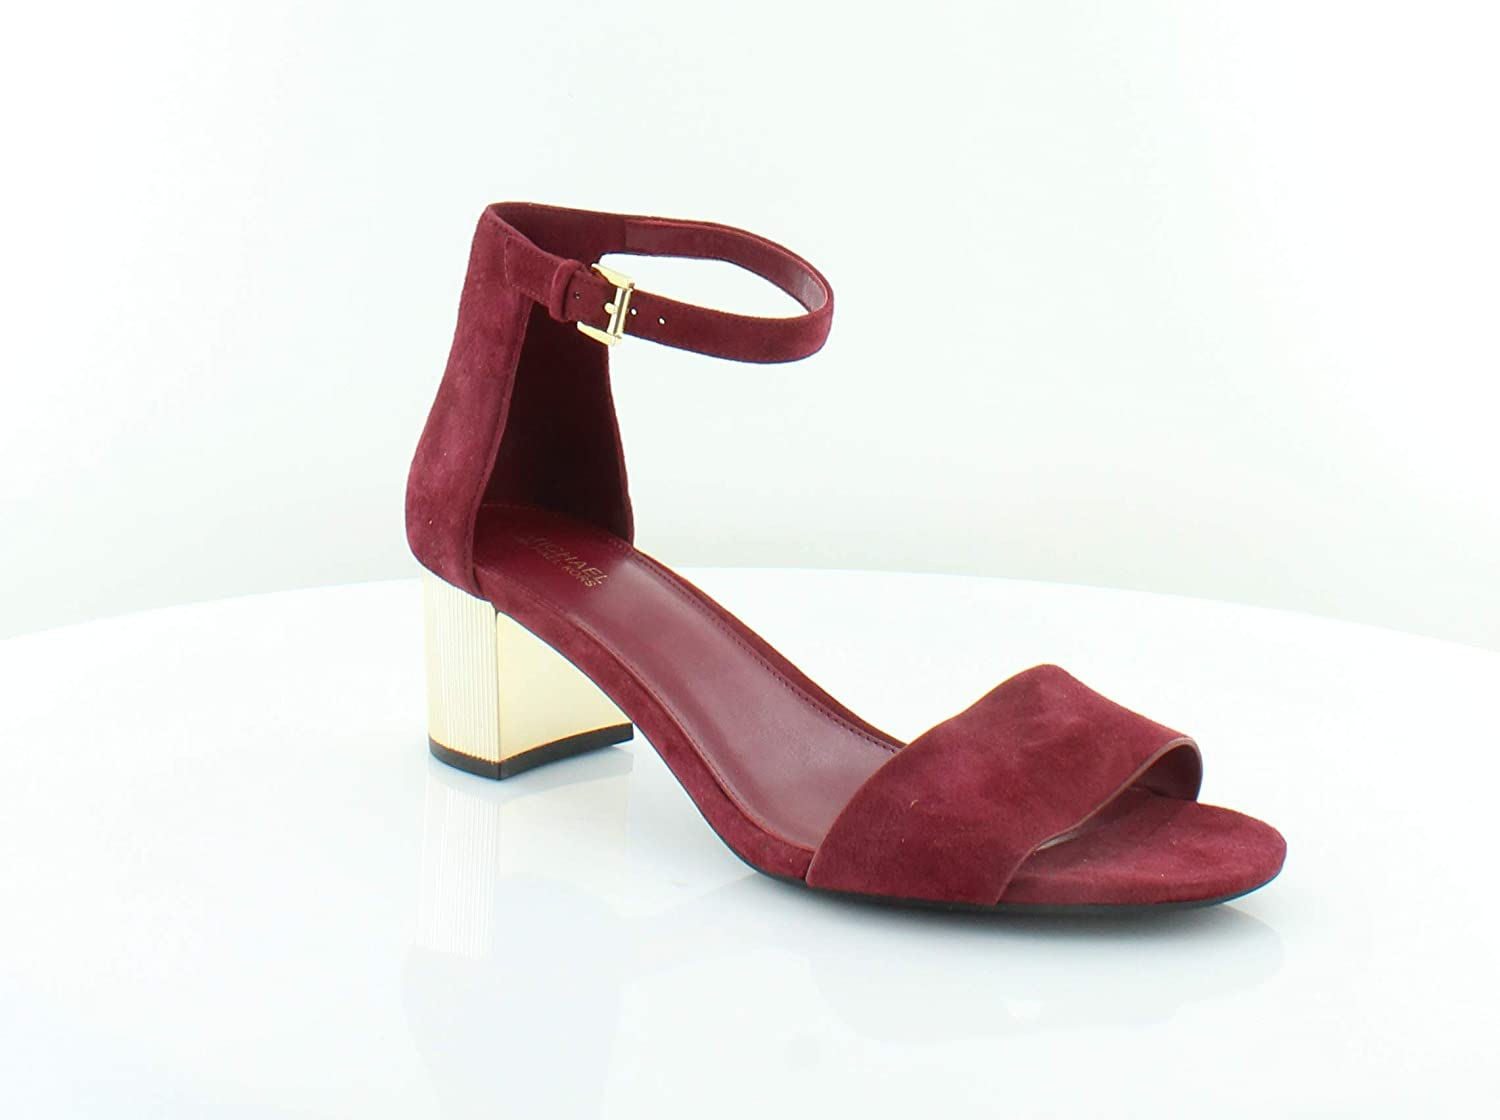 23cae63386 Michael Kors Womens Paloma Open Toe Casual Strappy, Mulberry Suede, Size  10.0 US / 8 UK US: Amazon.co.uk: Shoes & Bags